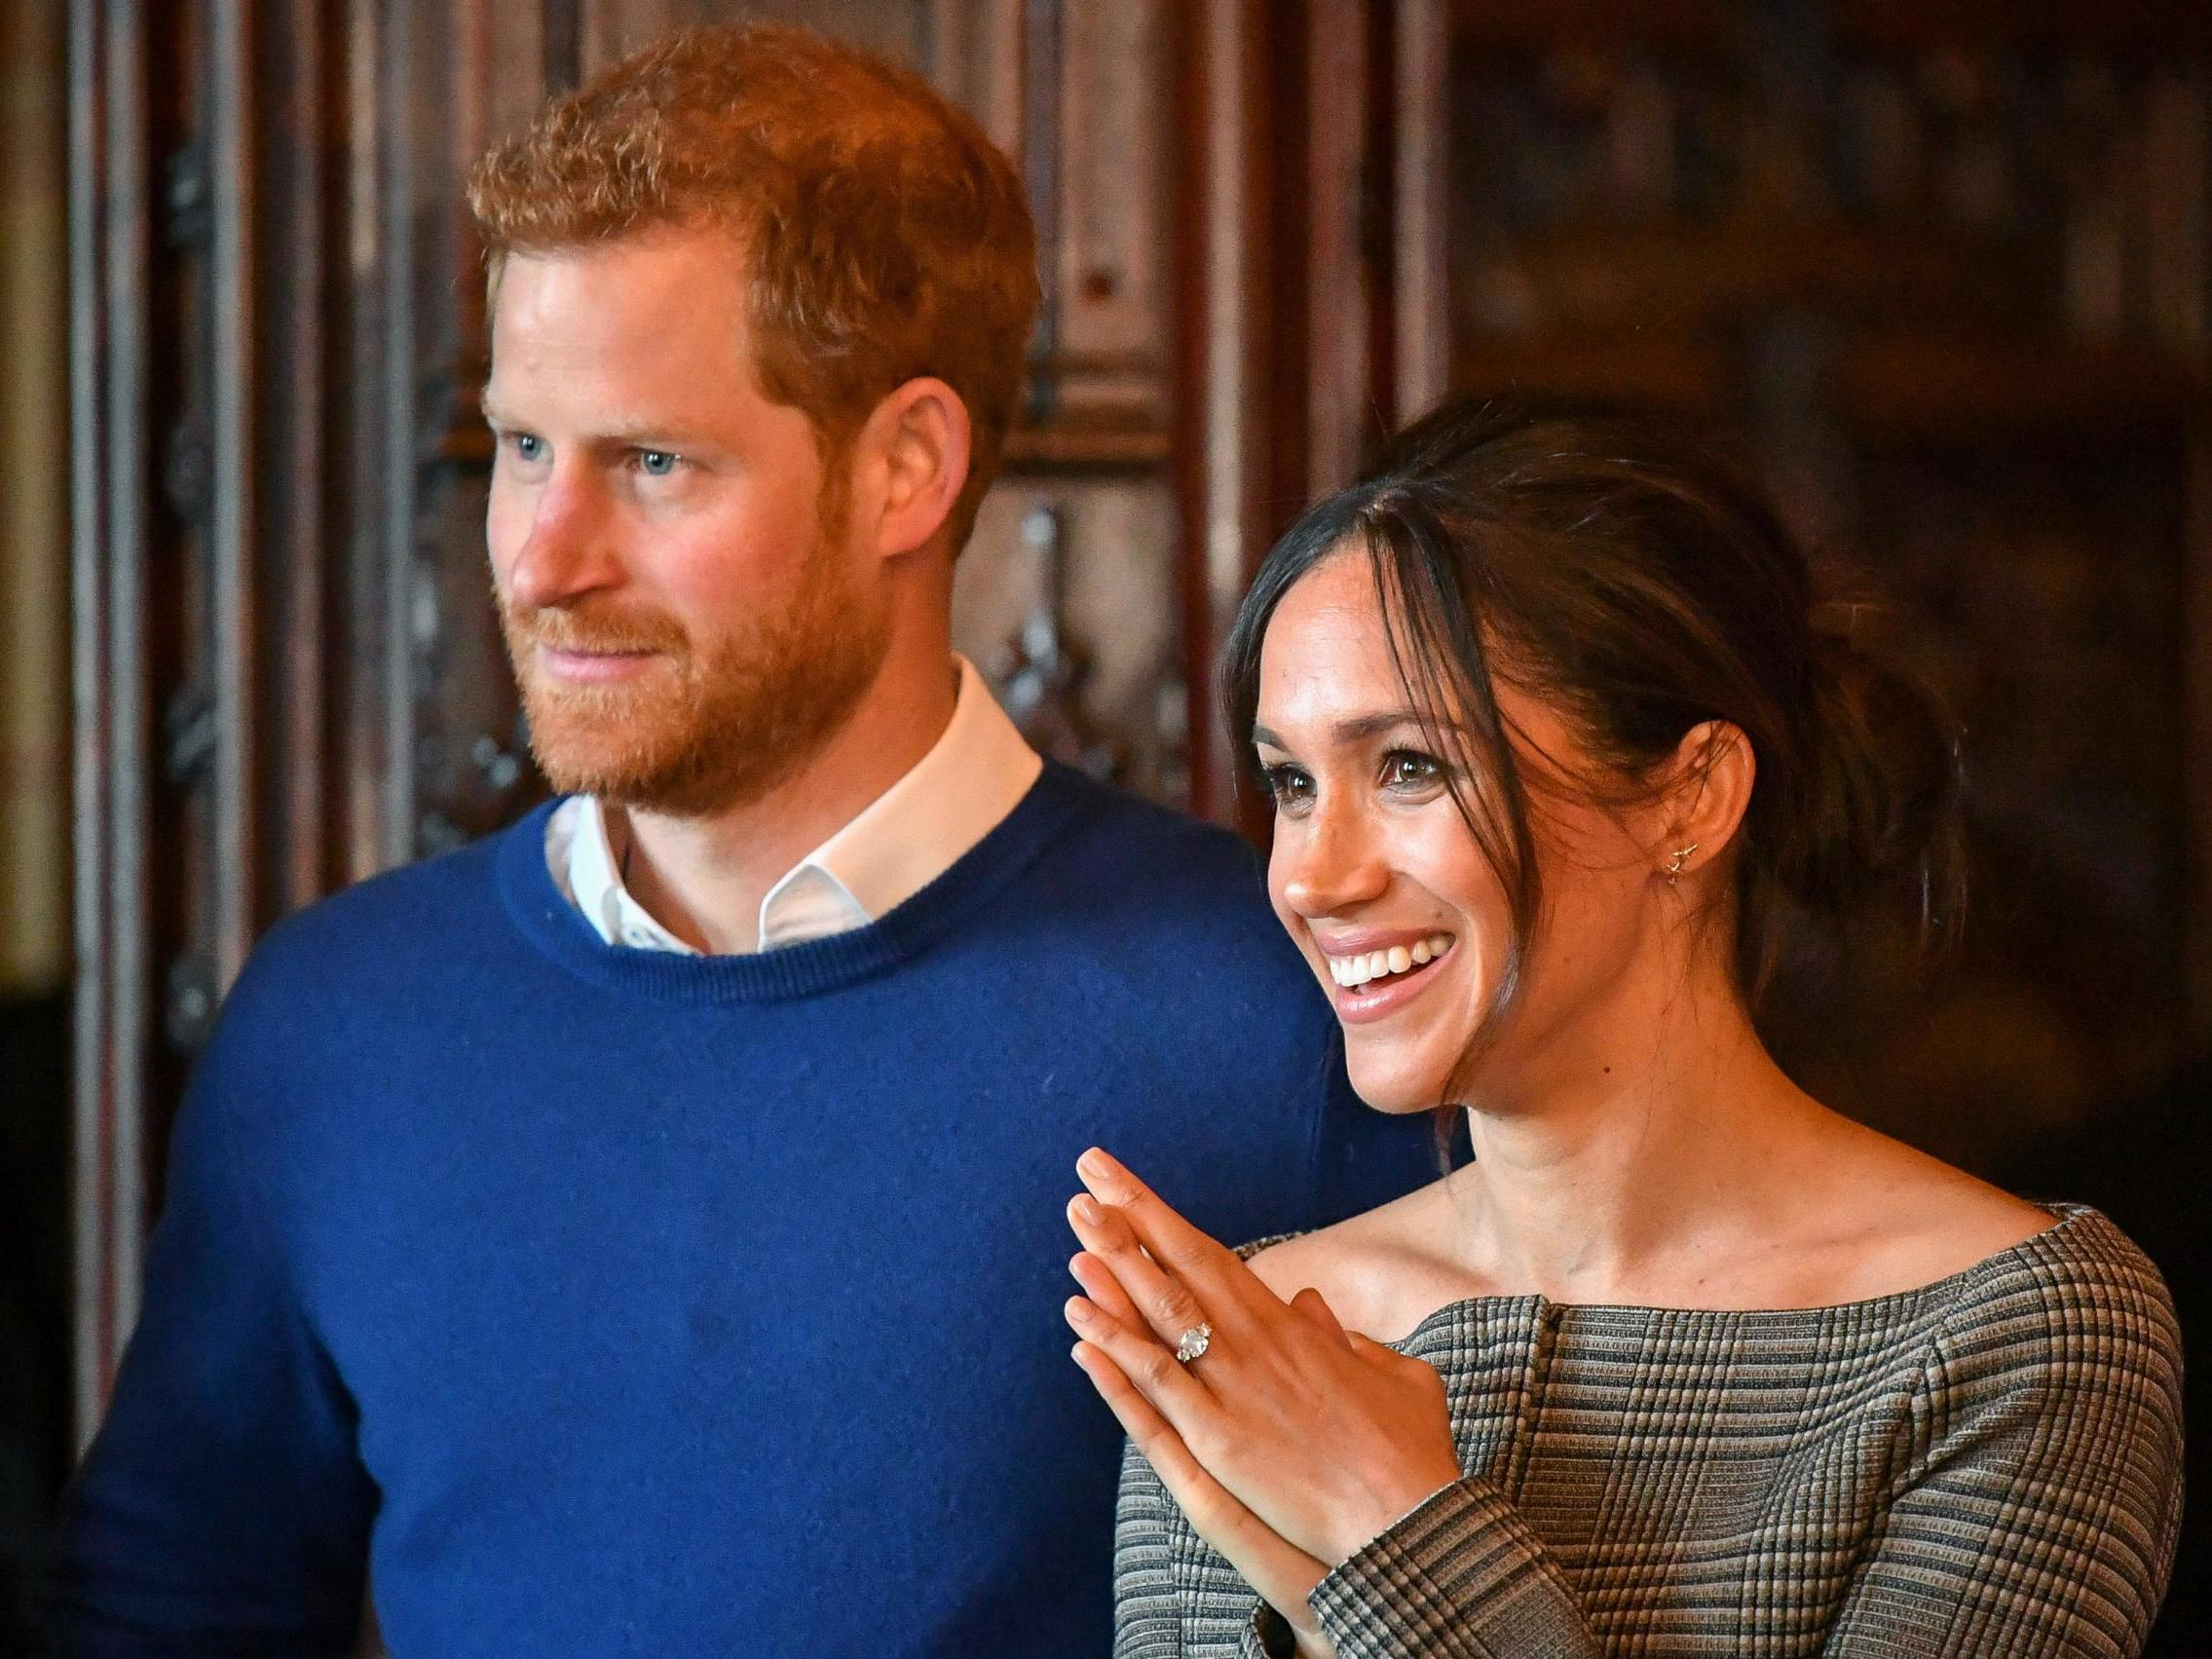 When will Meghan Markle give birth? Bookmakers predict royal